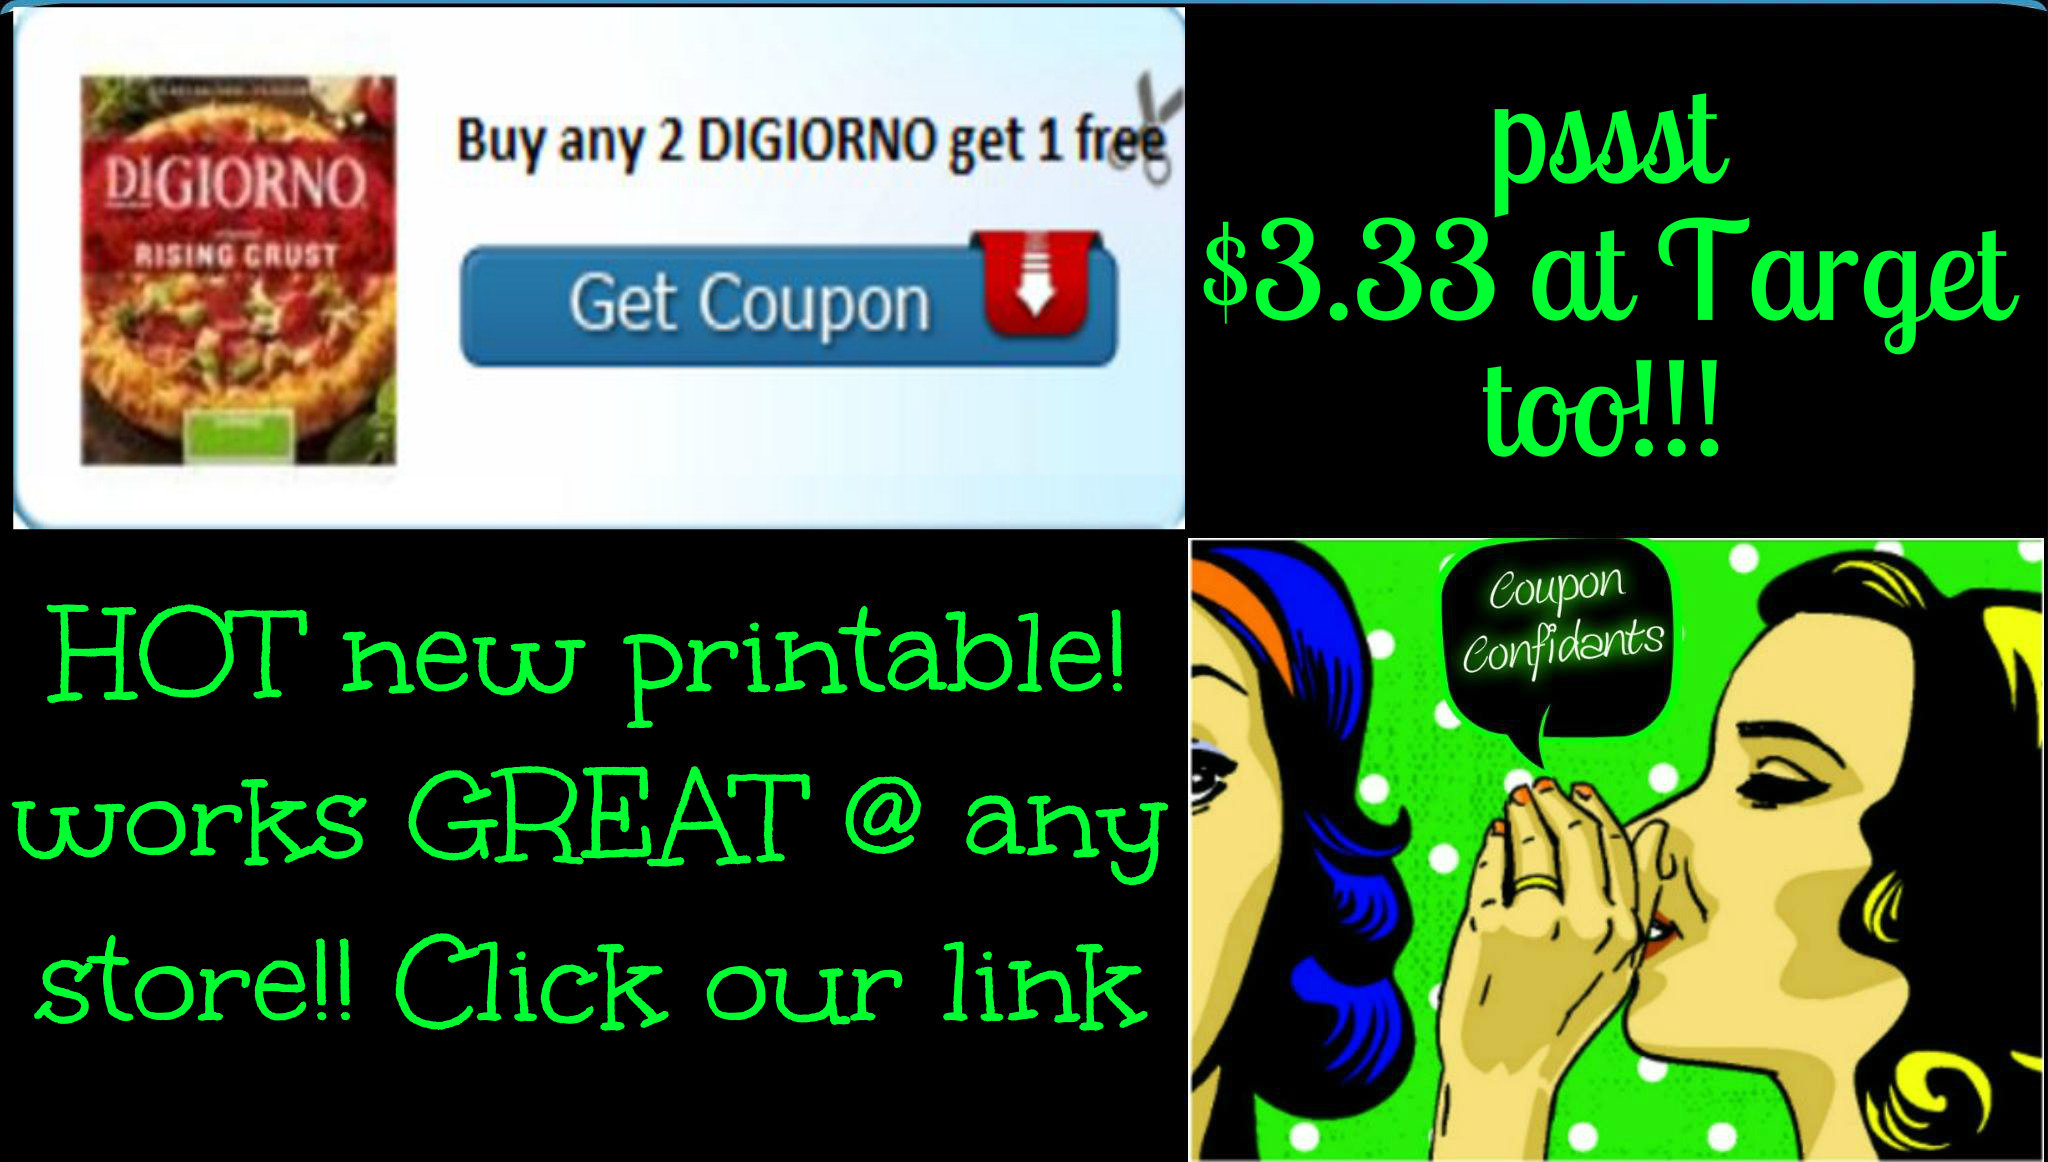 image relating to Digiorno Coupons Printable known as B2G1 Digiorno Pizza Coupon! Should really Print!! ⋆ Coupon Confidants